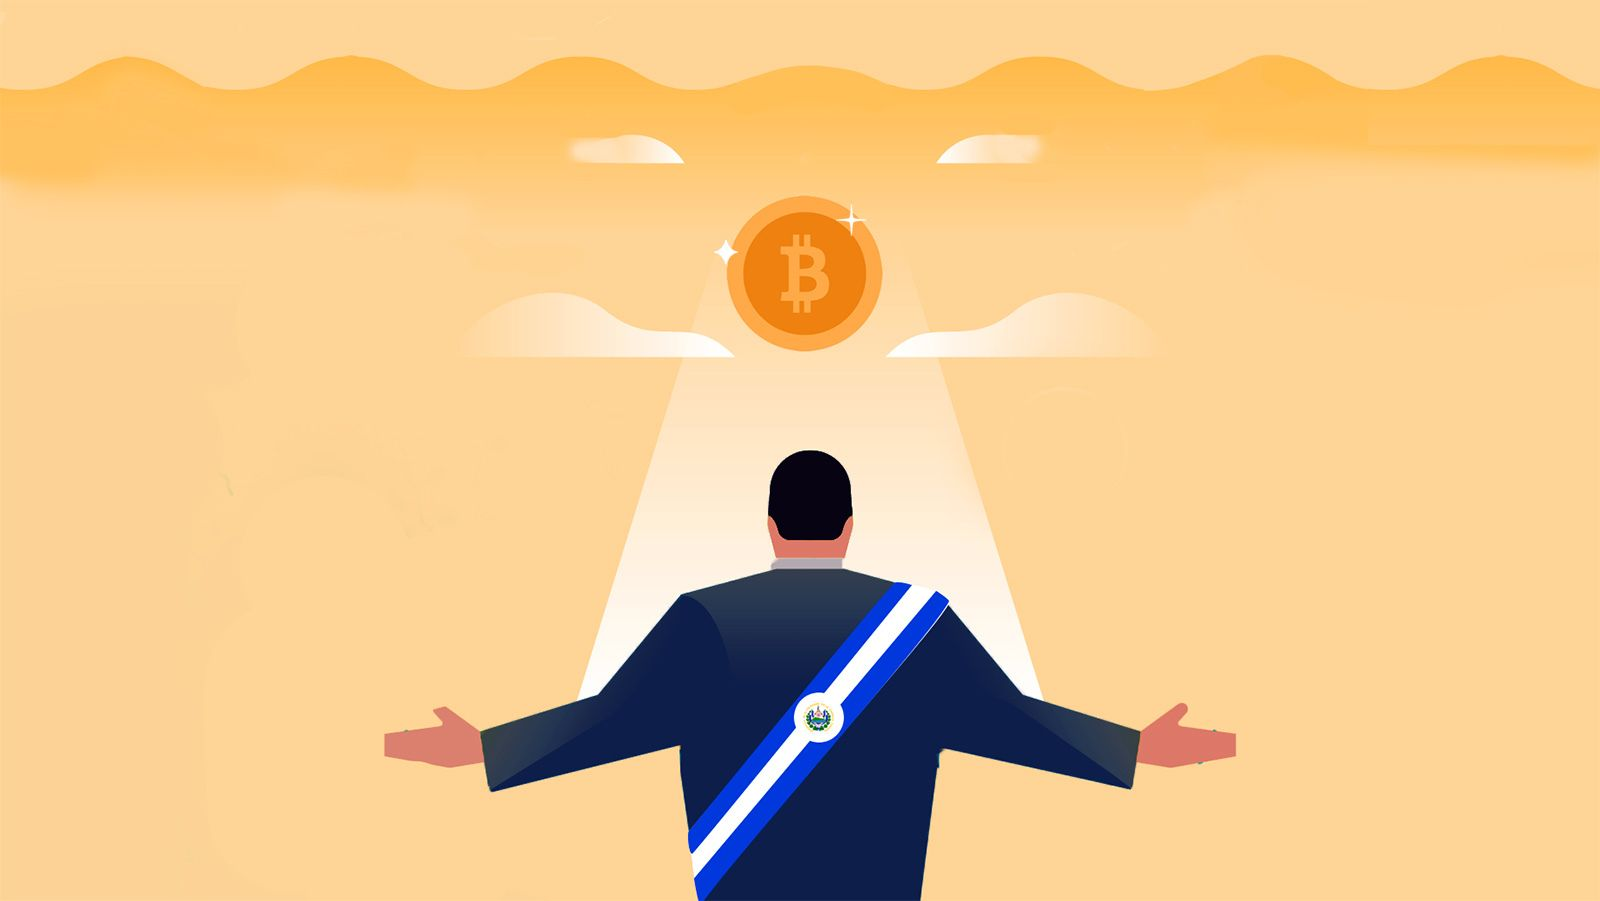 Why is El Salvador embracing Bitcoin and why doesn't IMF approve?